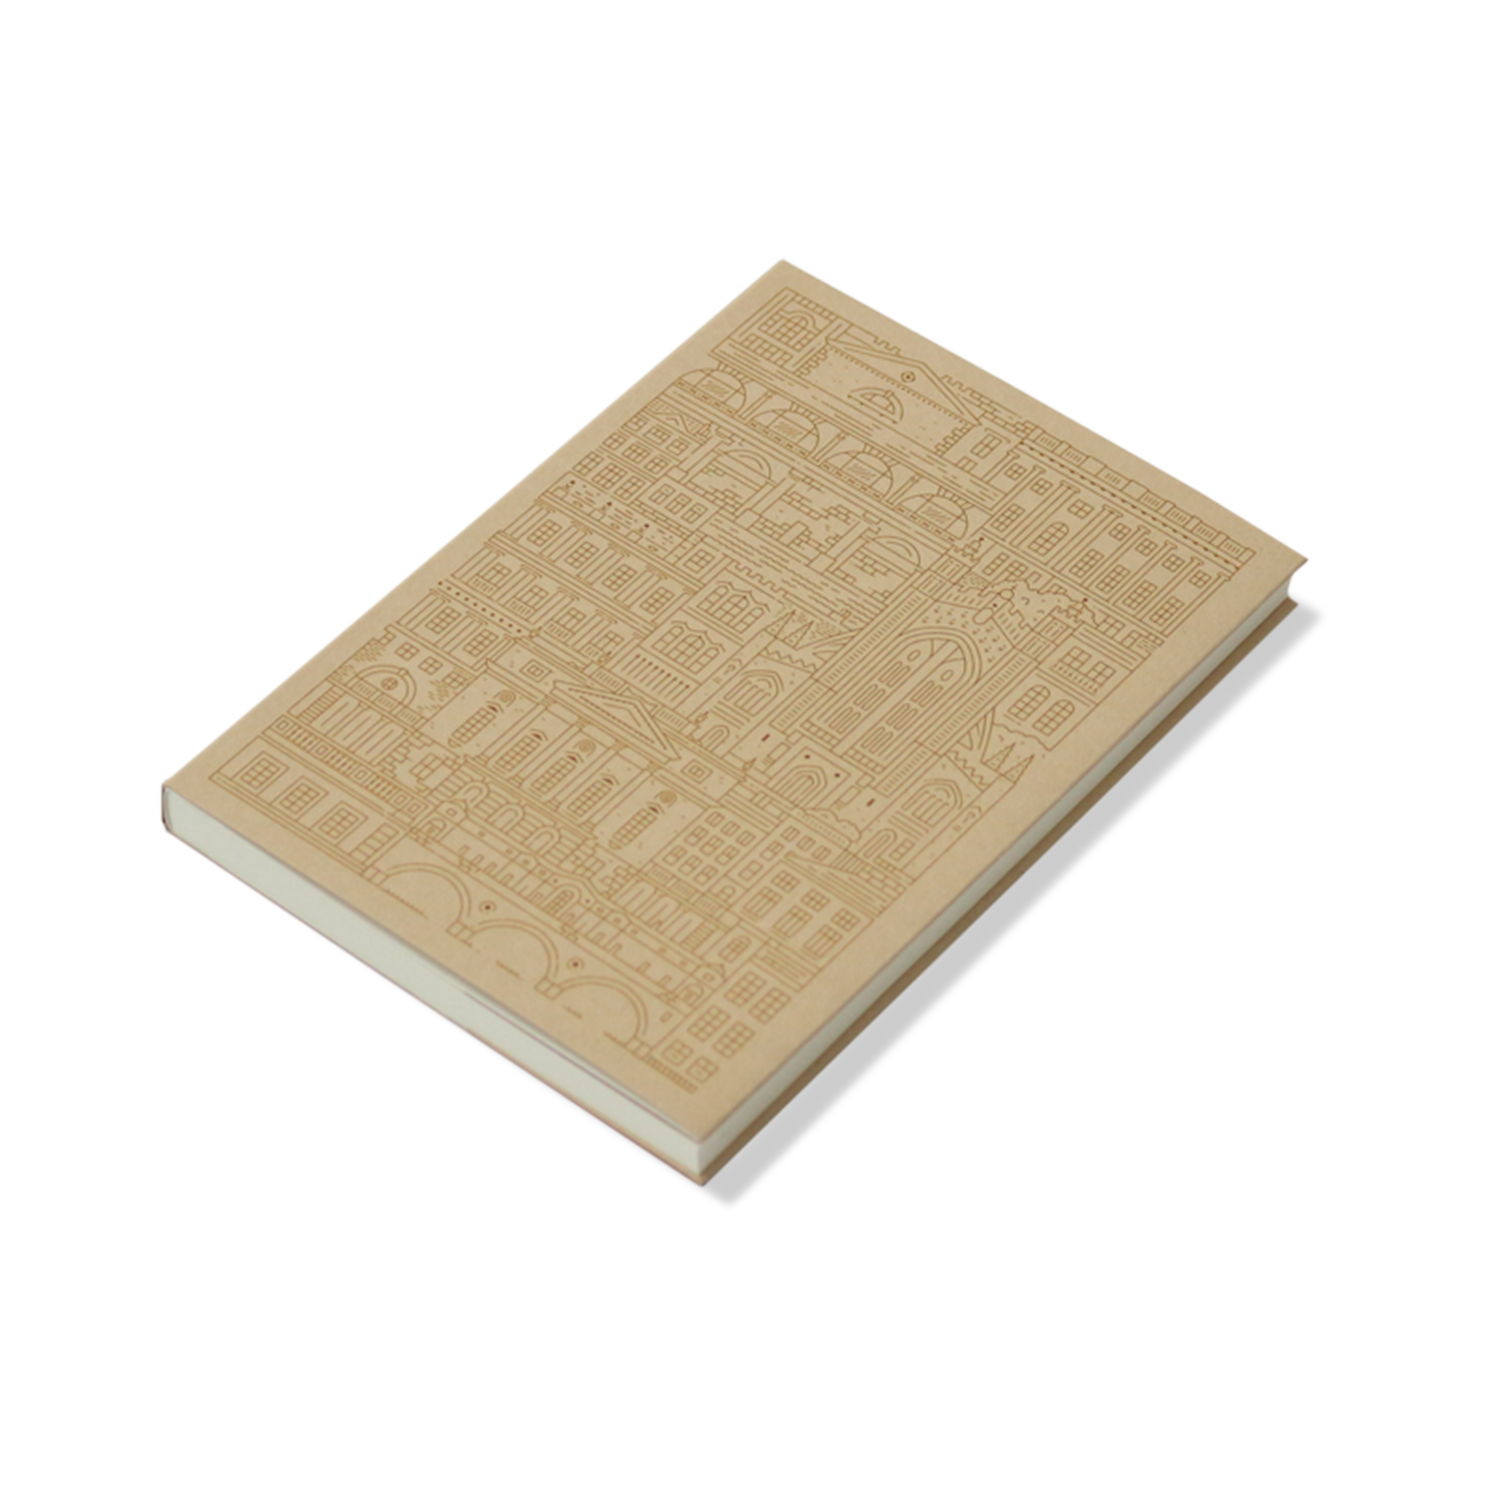 Place in Print The City Works Bath Notebook Exterior